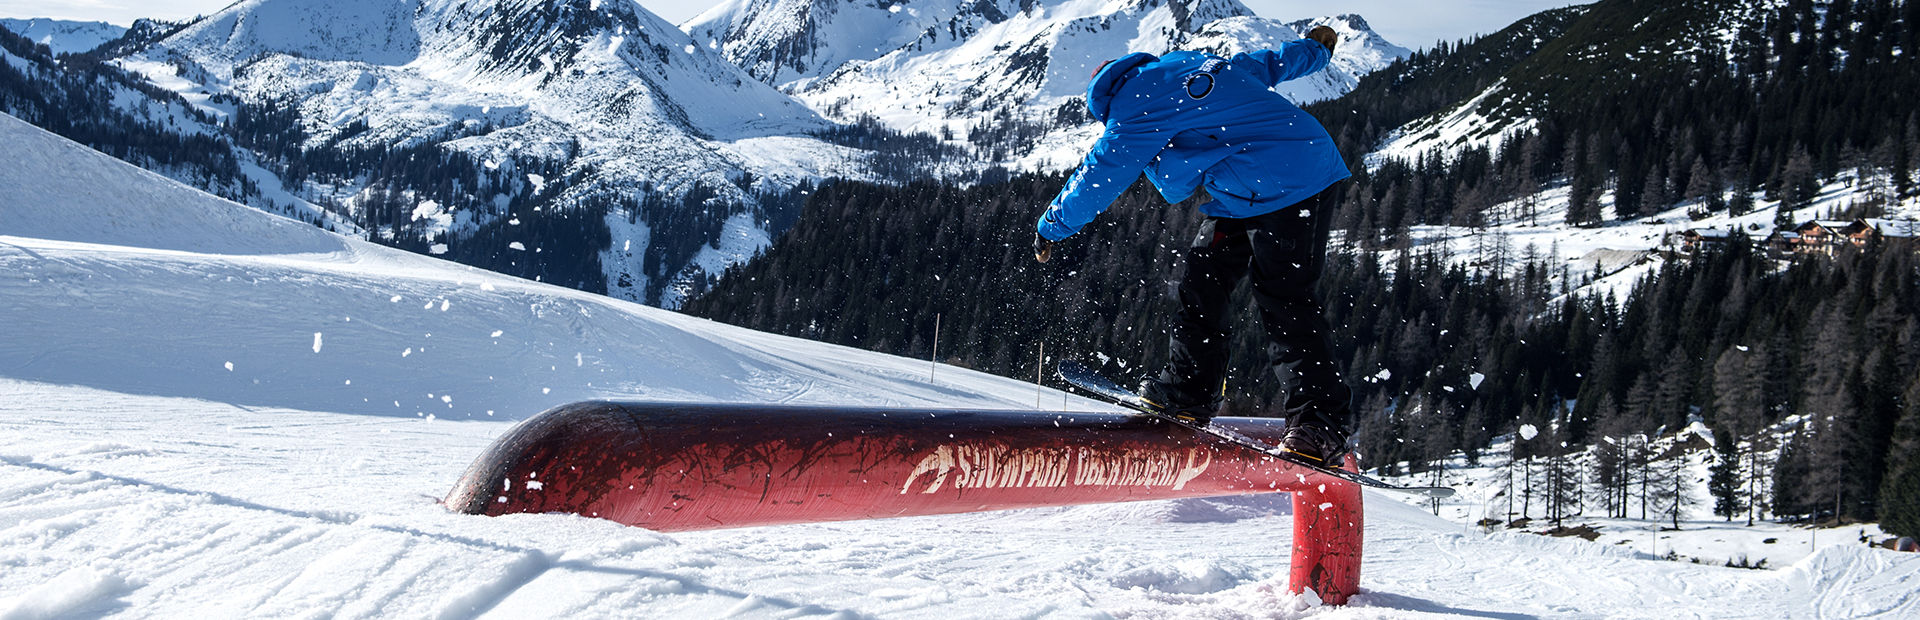 Snowboard Teacher on Rail at Obertauern Snowpark